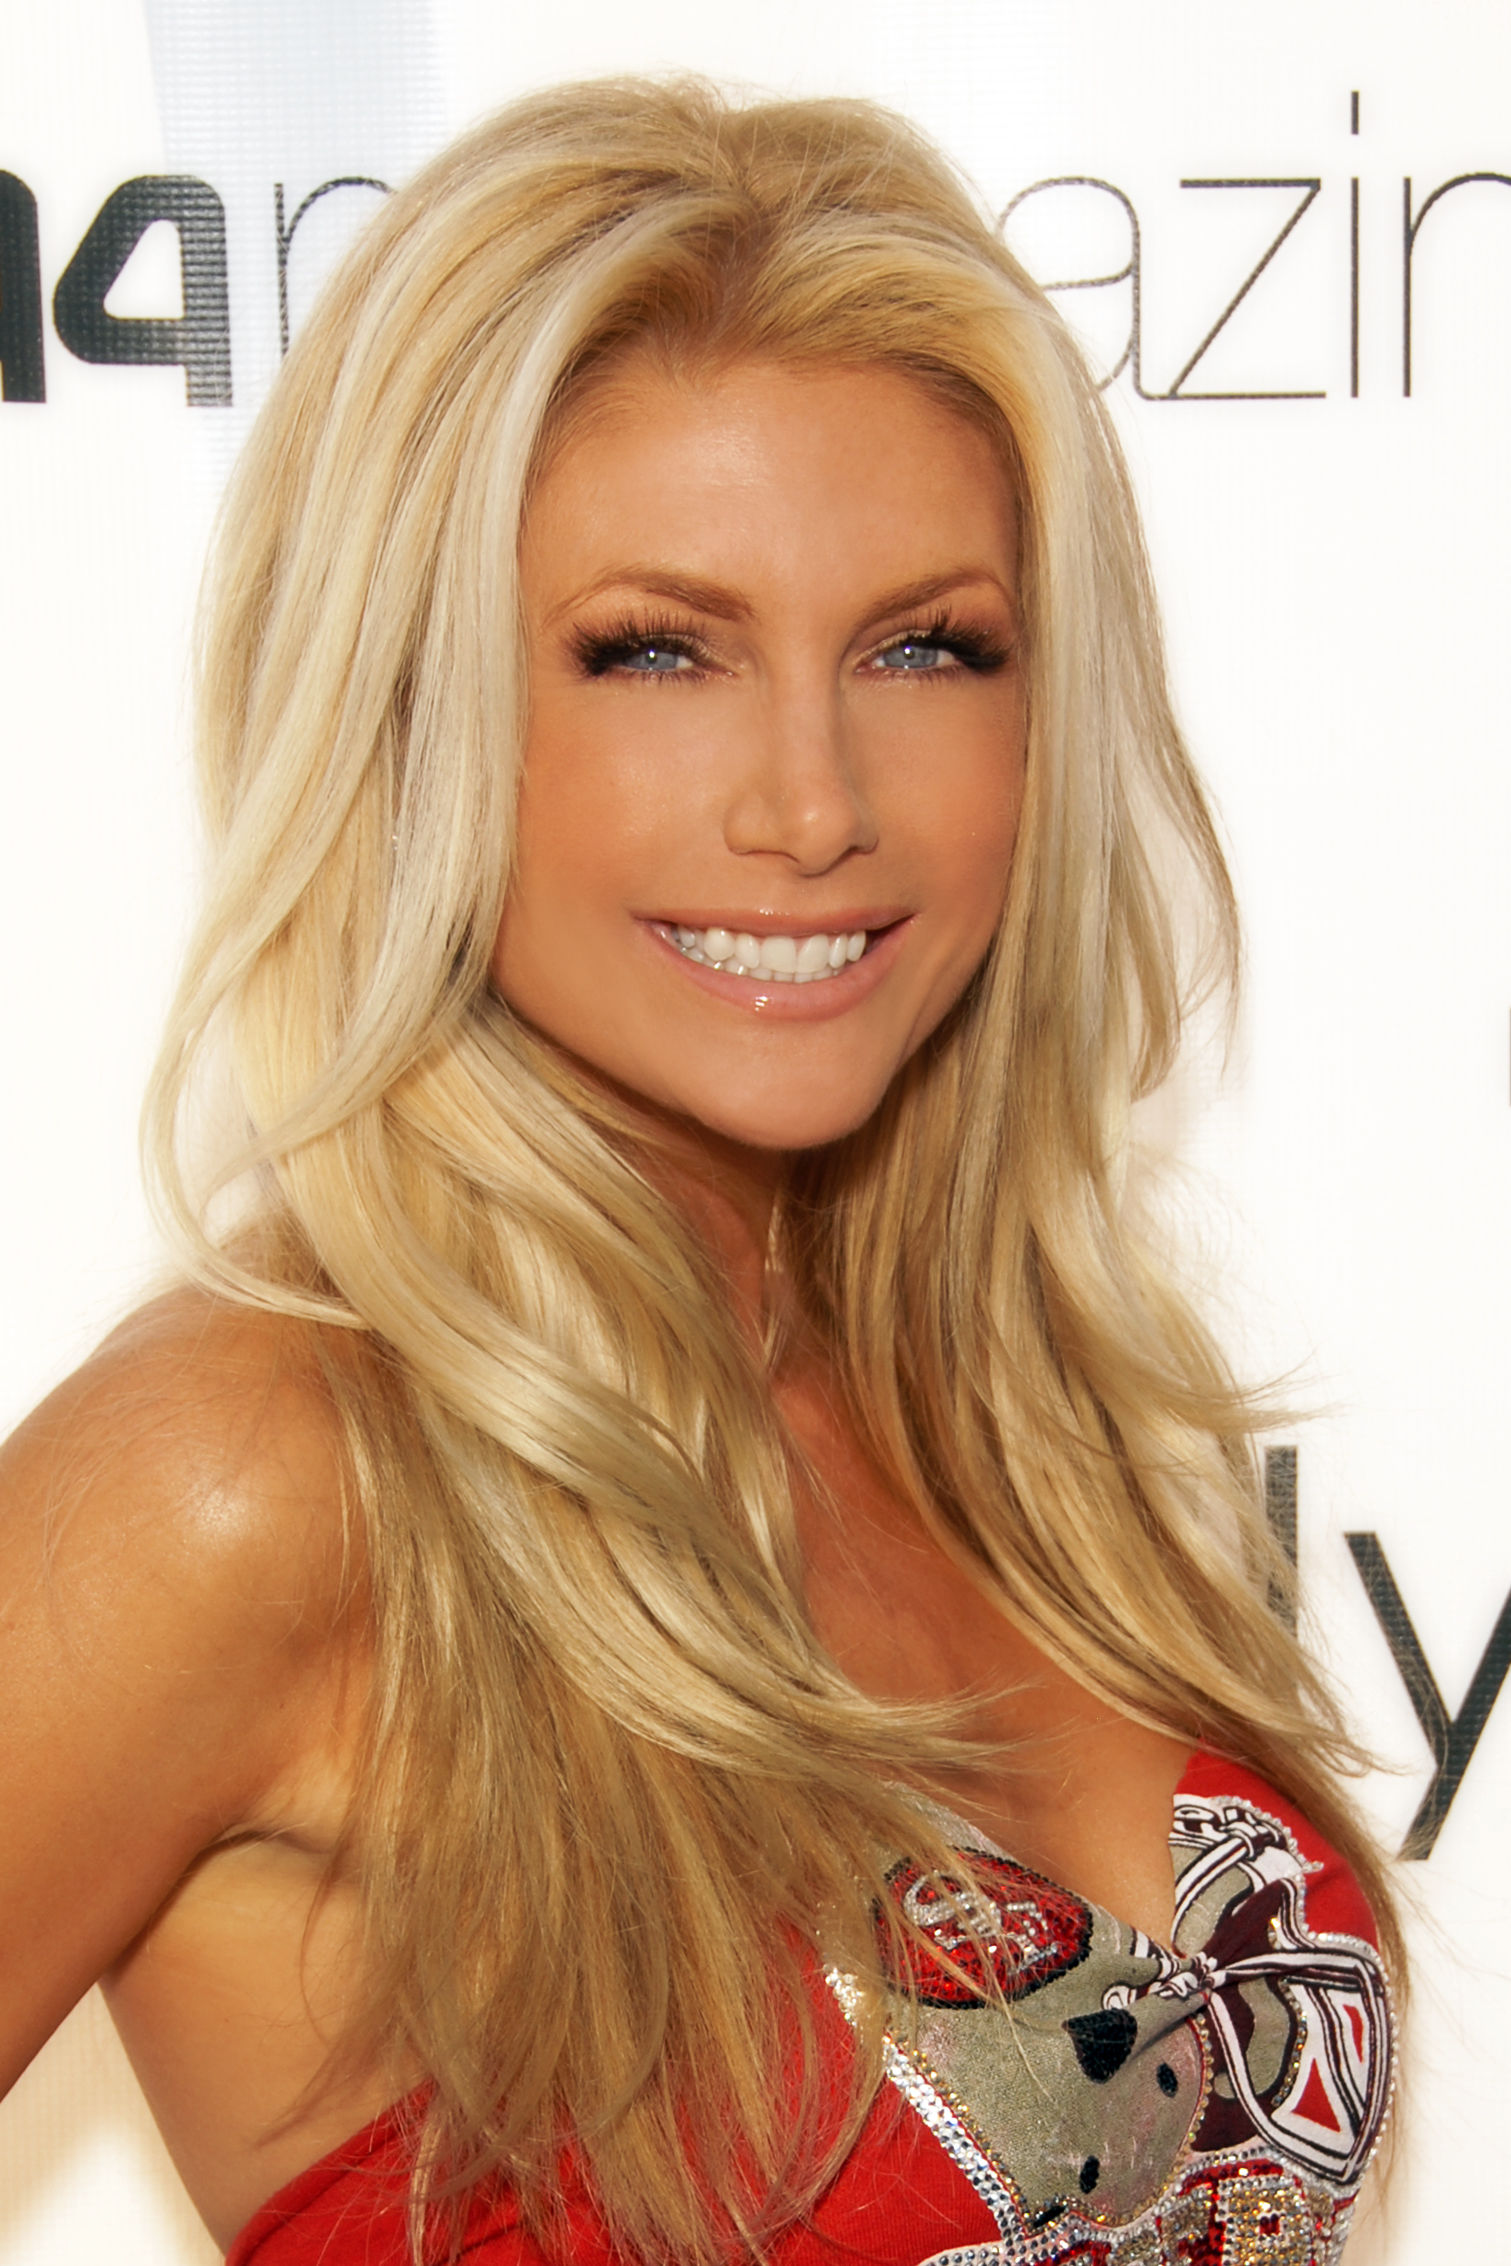 Photo of Brande Roderick: American model and actress